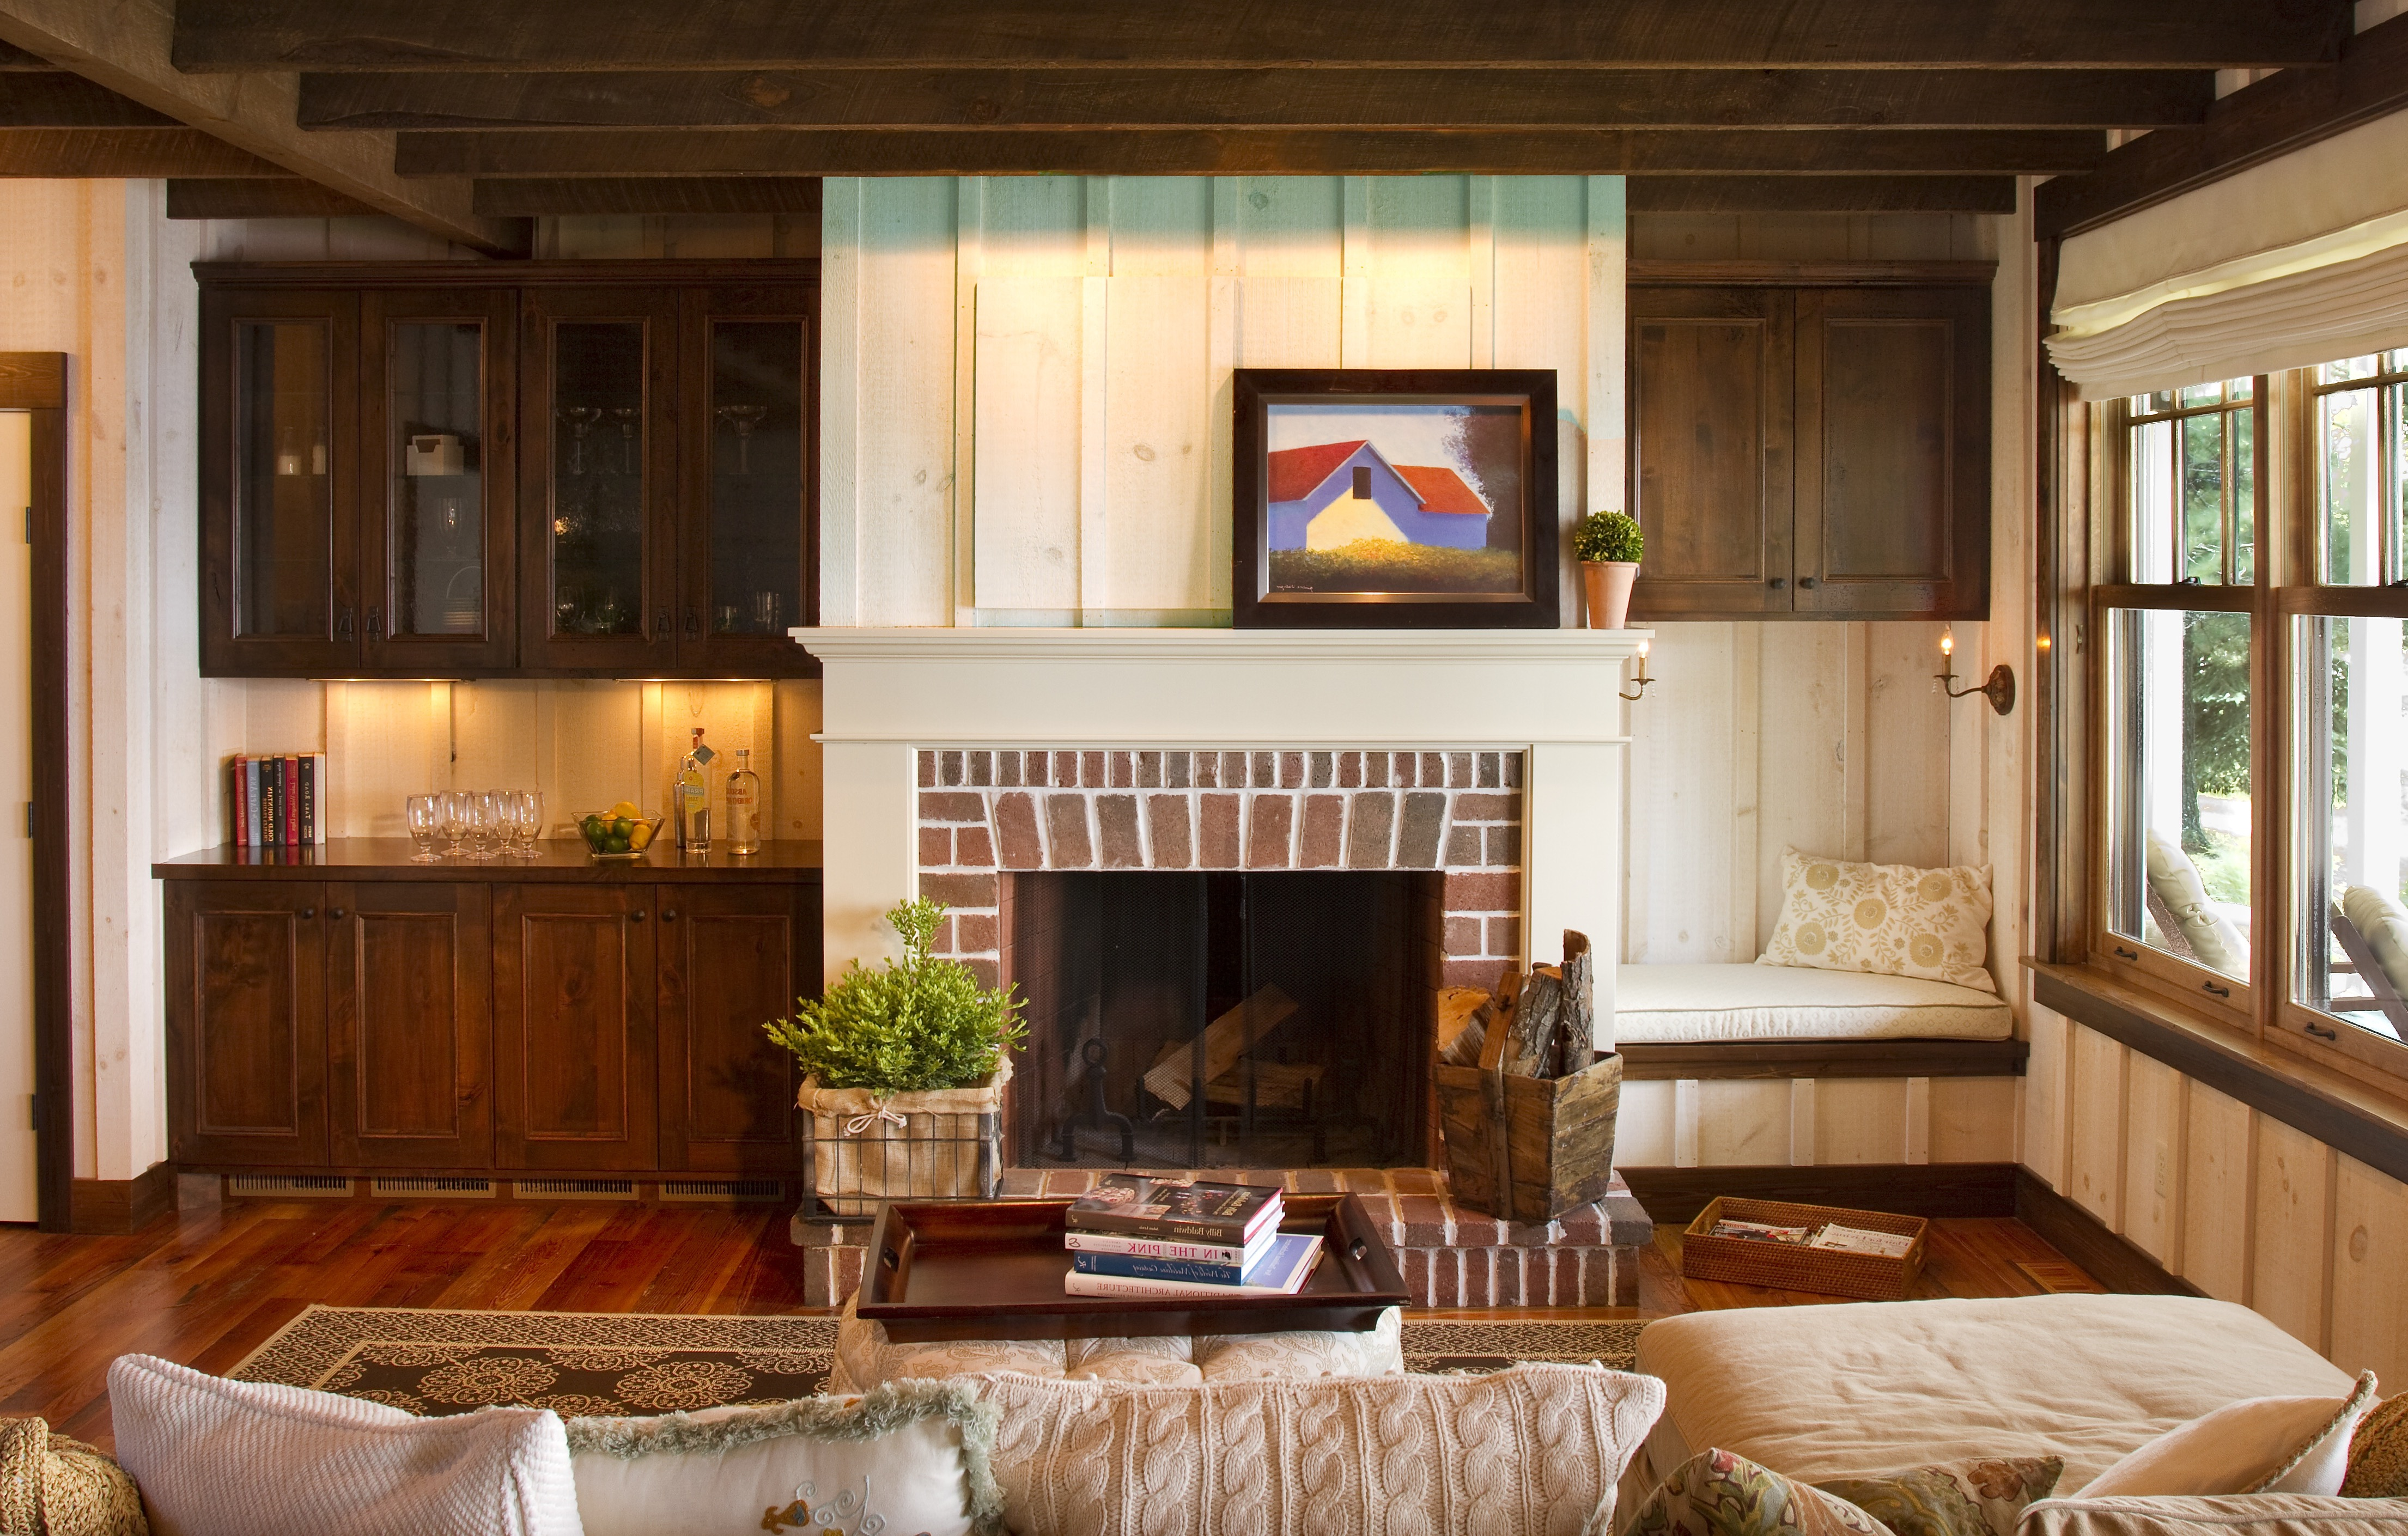 Cozy Country Living Room With Brick Fireplace (View 9 of 18)